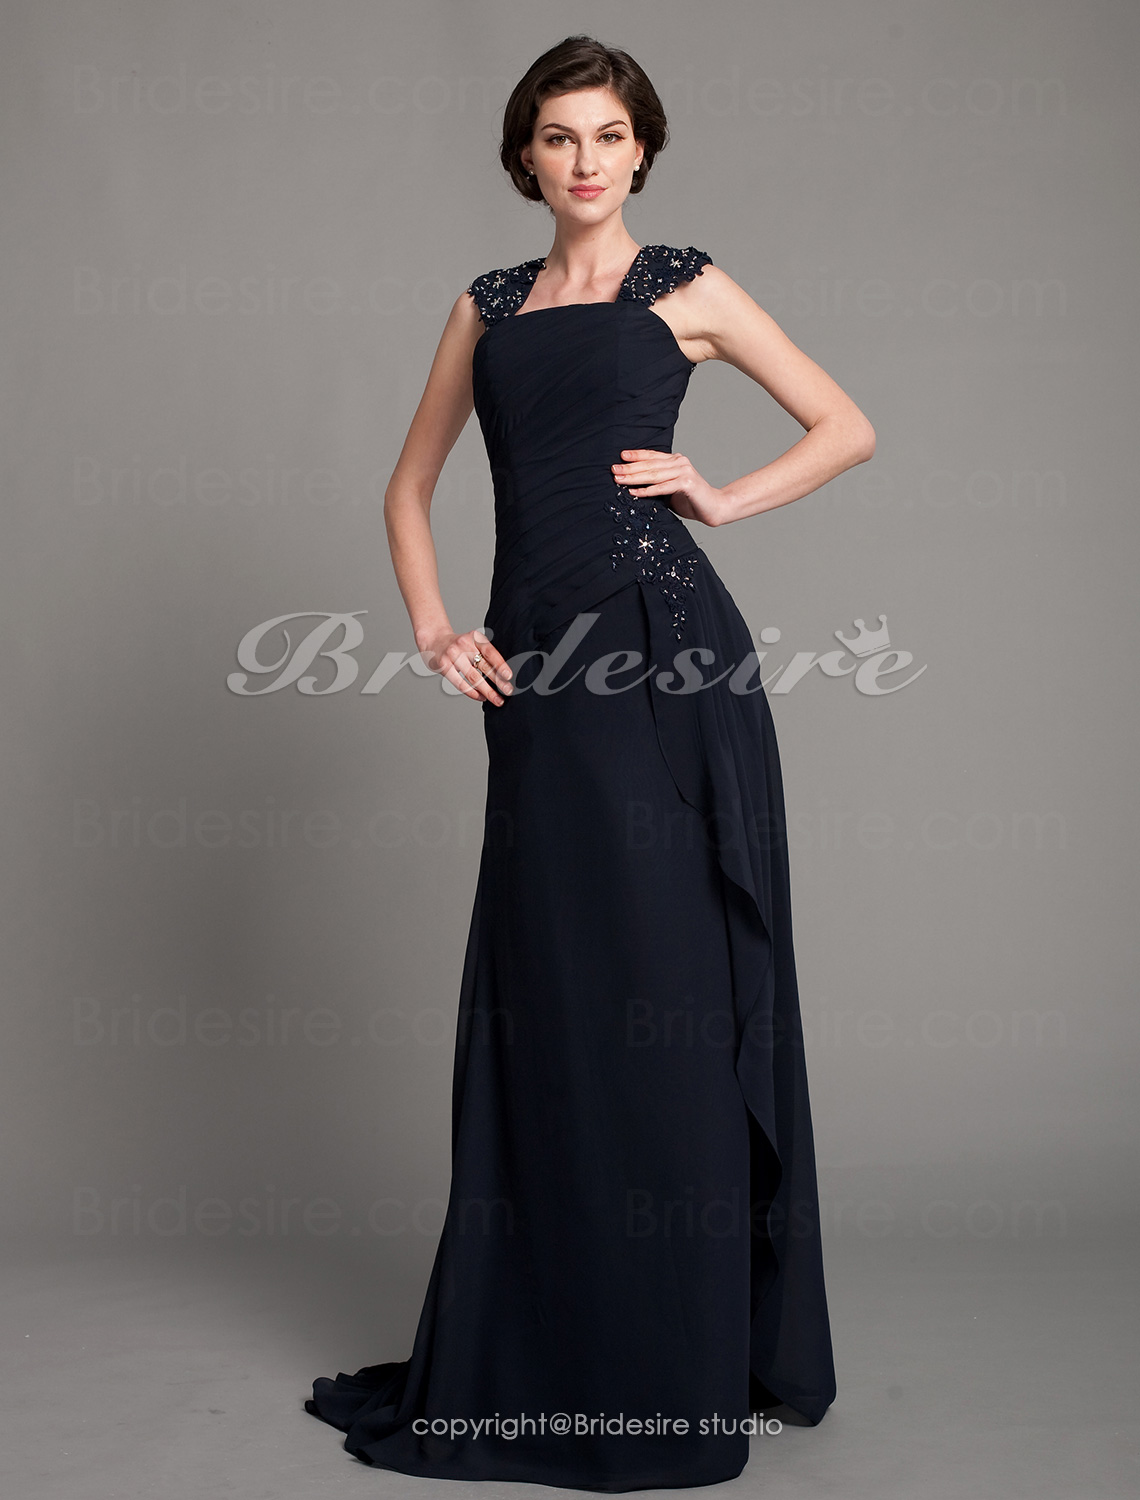 A-line Chiffon Floor-length Off-the-shoulder Evening Dress